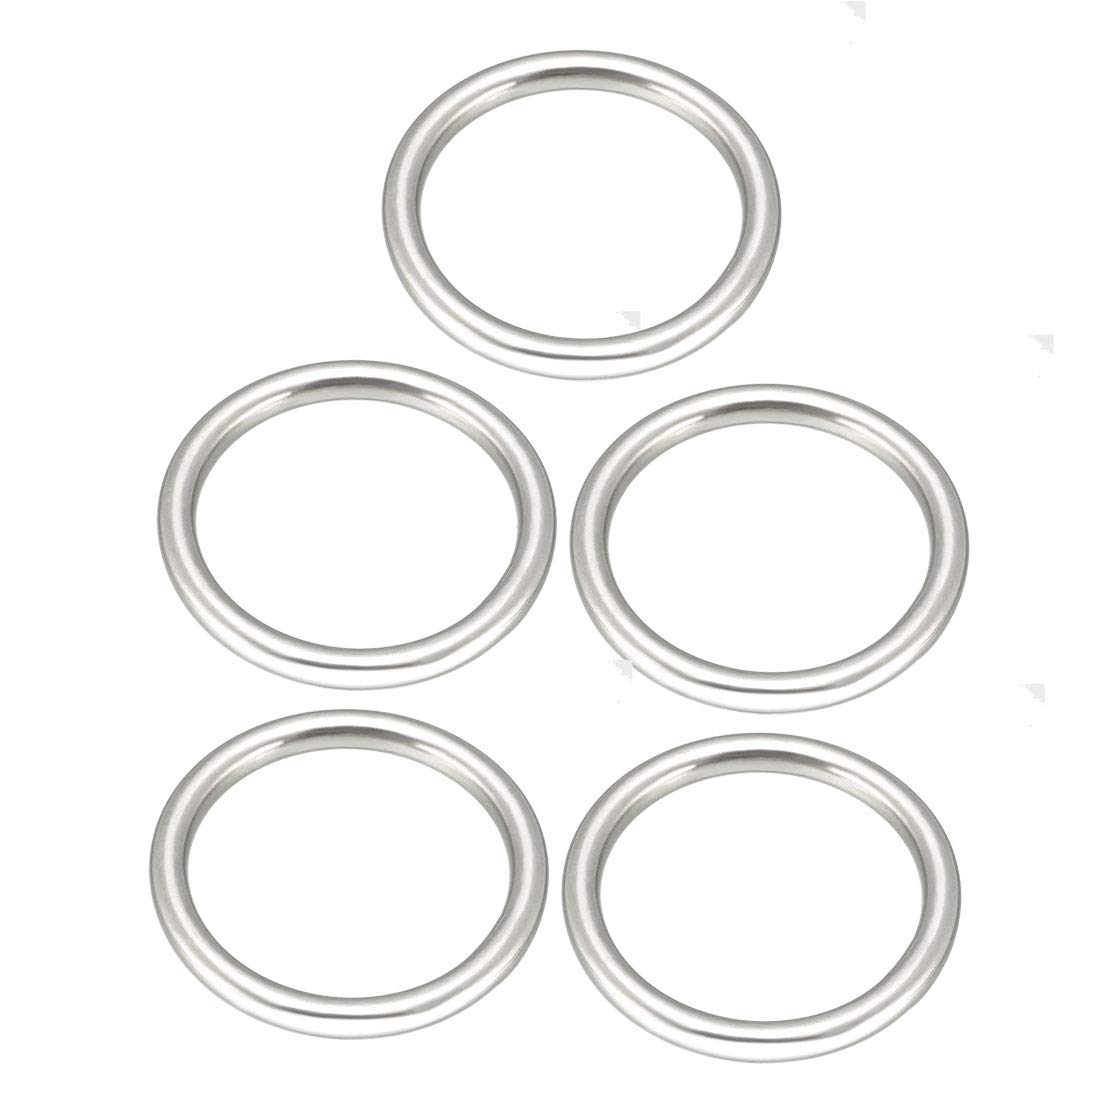 sourcing map 5 Pcs Multi-Purpose Metal O Ring Buckle Welded 38mm x 30mm x 4mm for Hardware Bags Ring Hand DIY Accessories